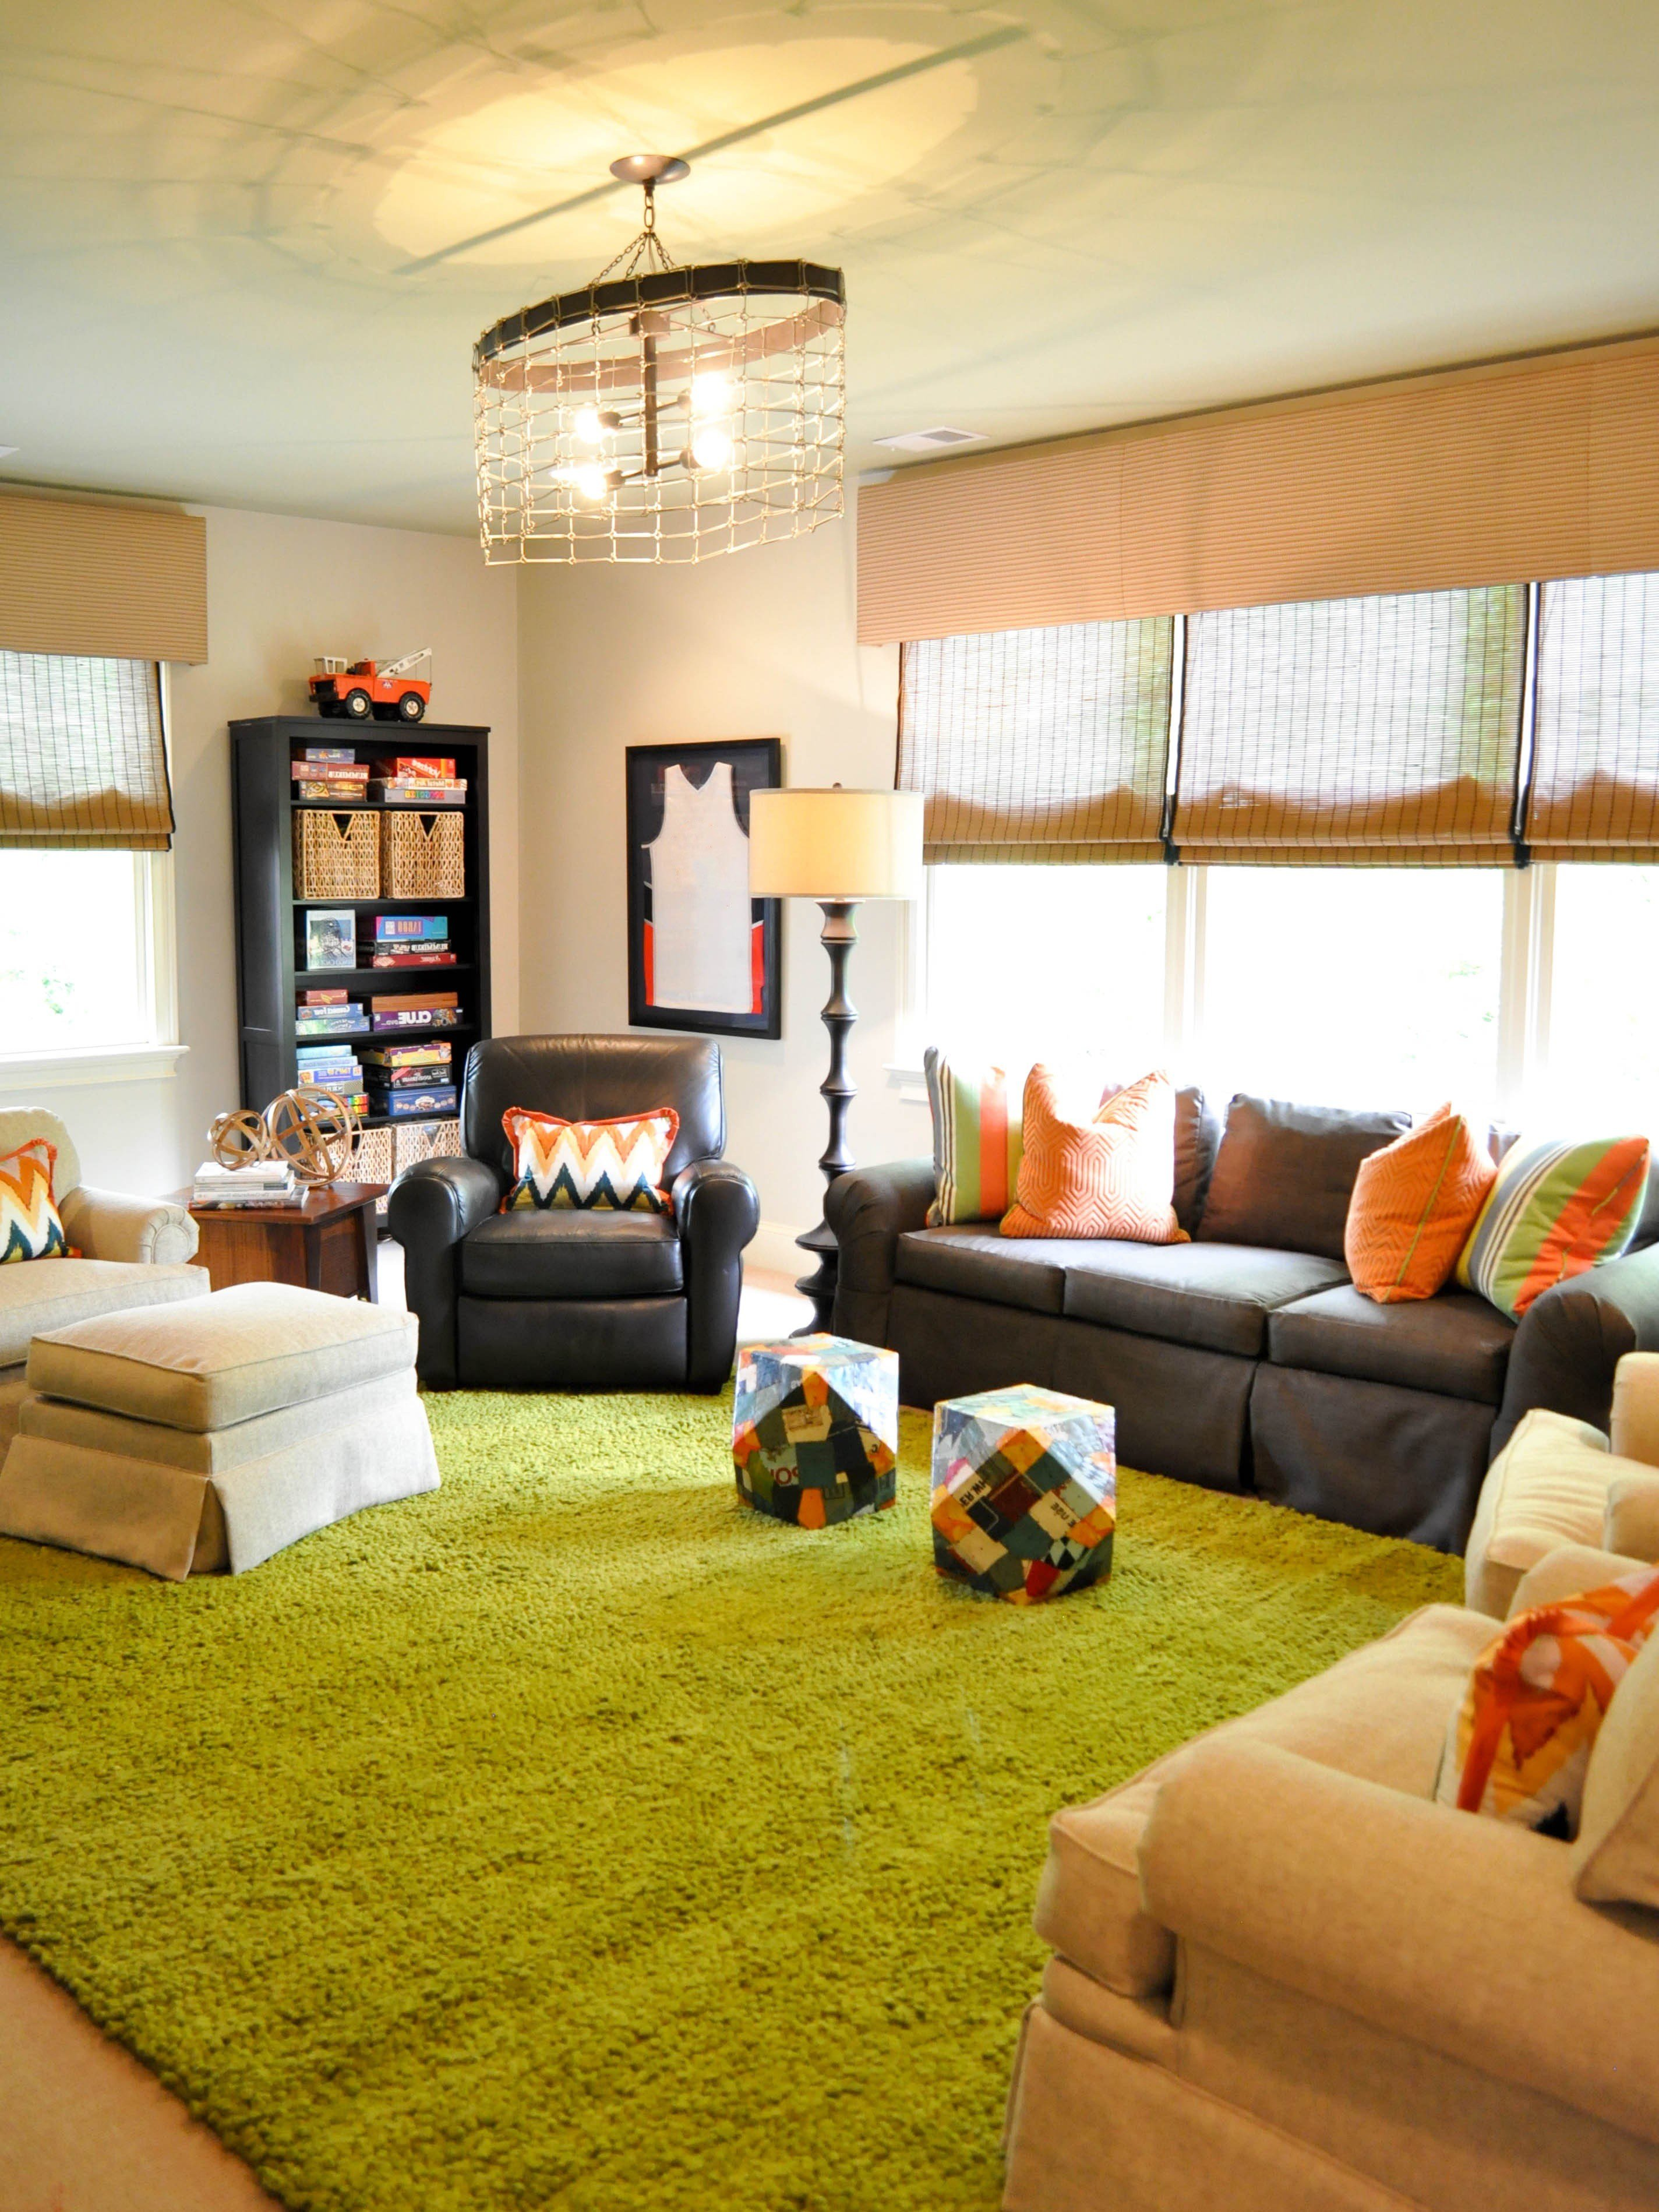 Best 30 Kids Playroom Interior Decor Ideas 18047 Bedroom Ideas With Pictures